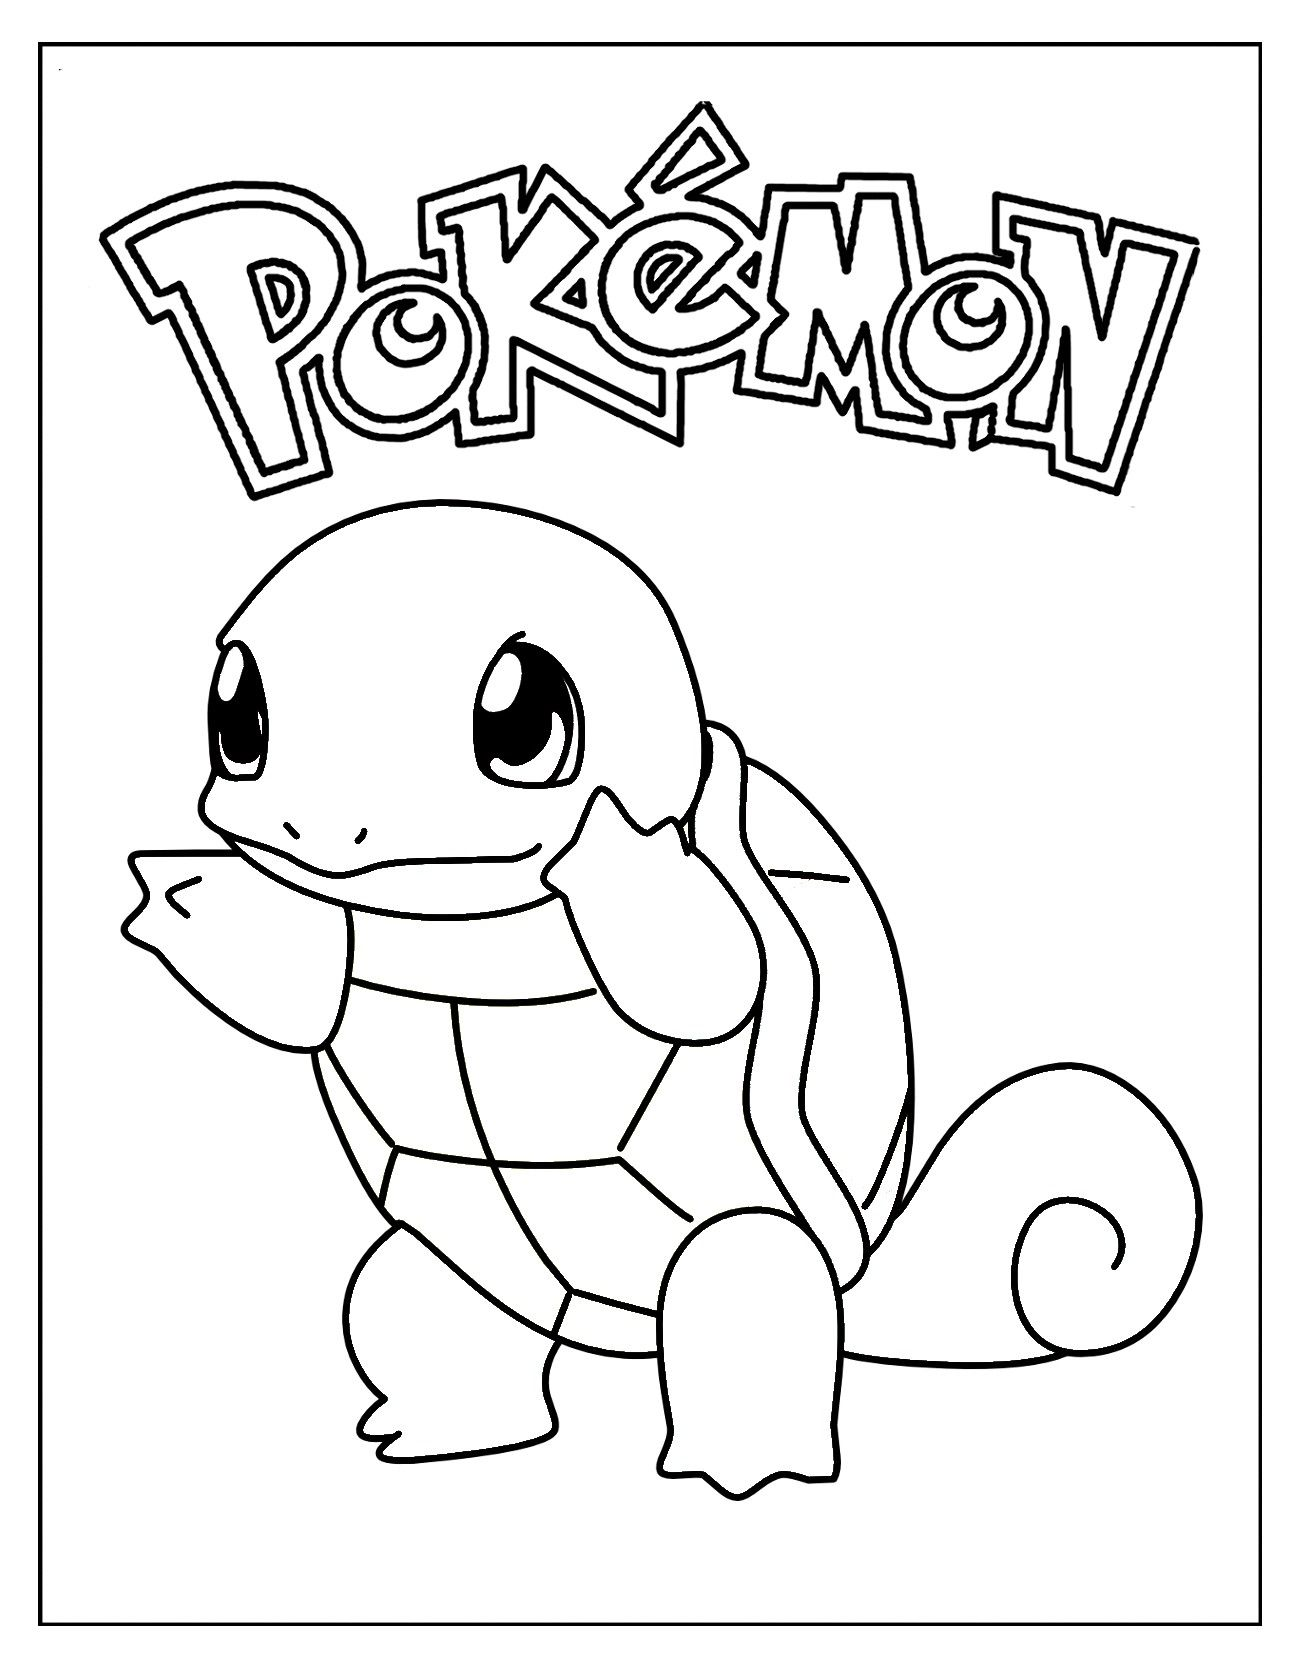 Pokemon Squirtle Coloring Pages Through The Thousand Photographs On The Web Regarding Pokemon S Pokemon Coloring Pages Pikachu Coloring Page Pokemon Coloring